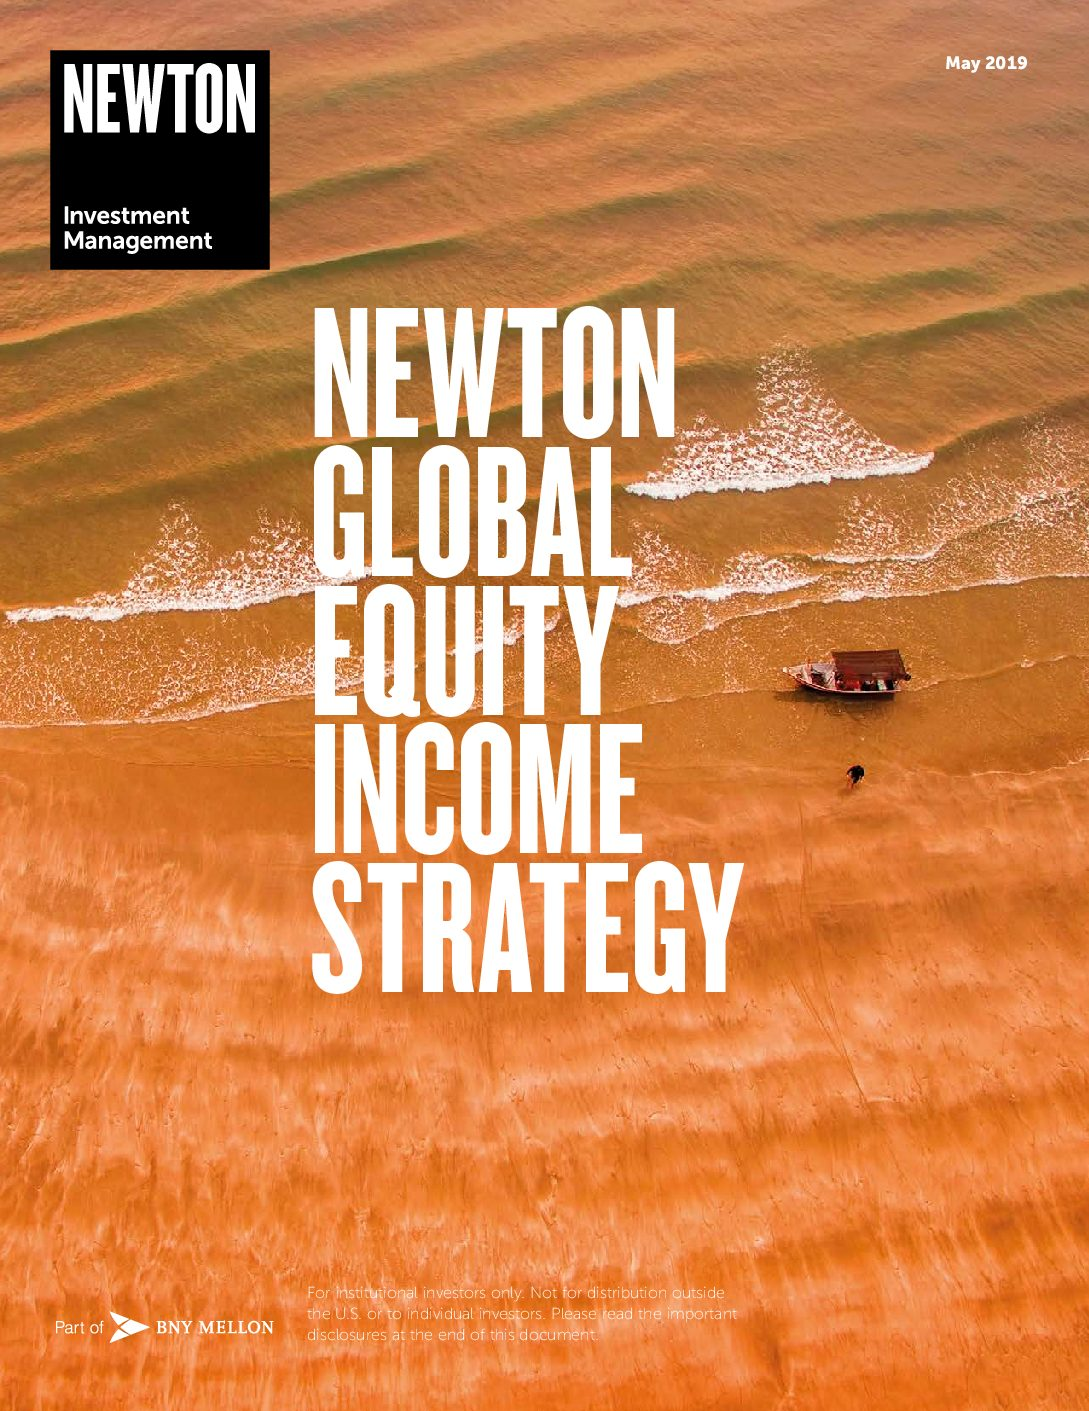 NIMNA Global Equity Income brochure